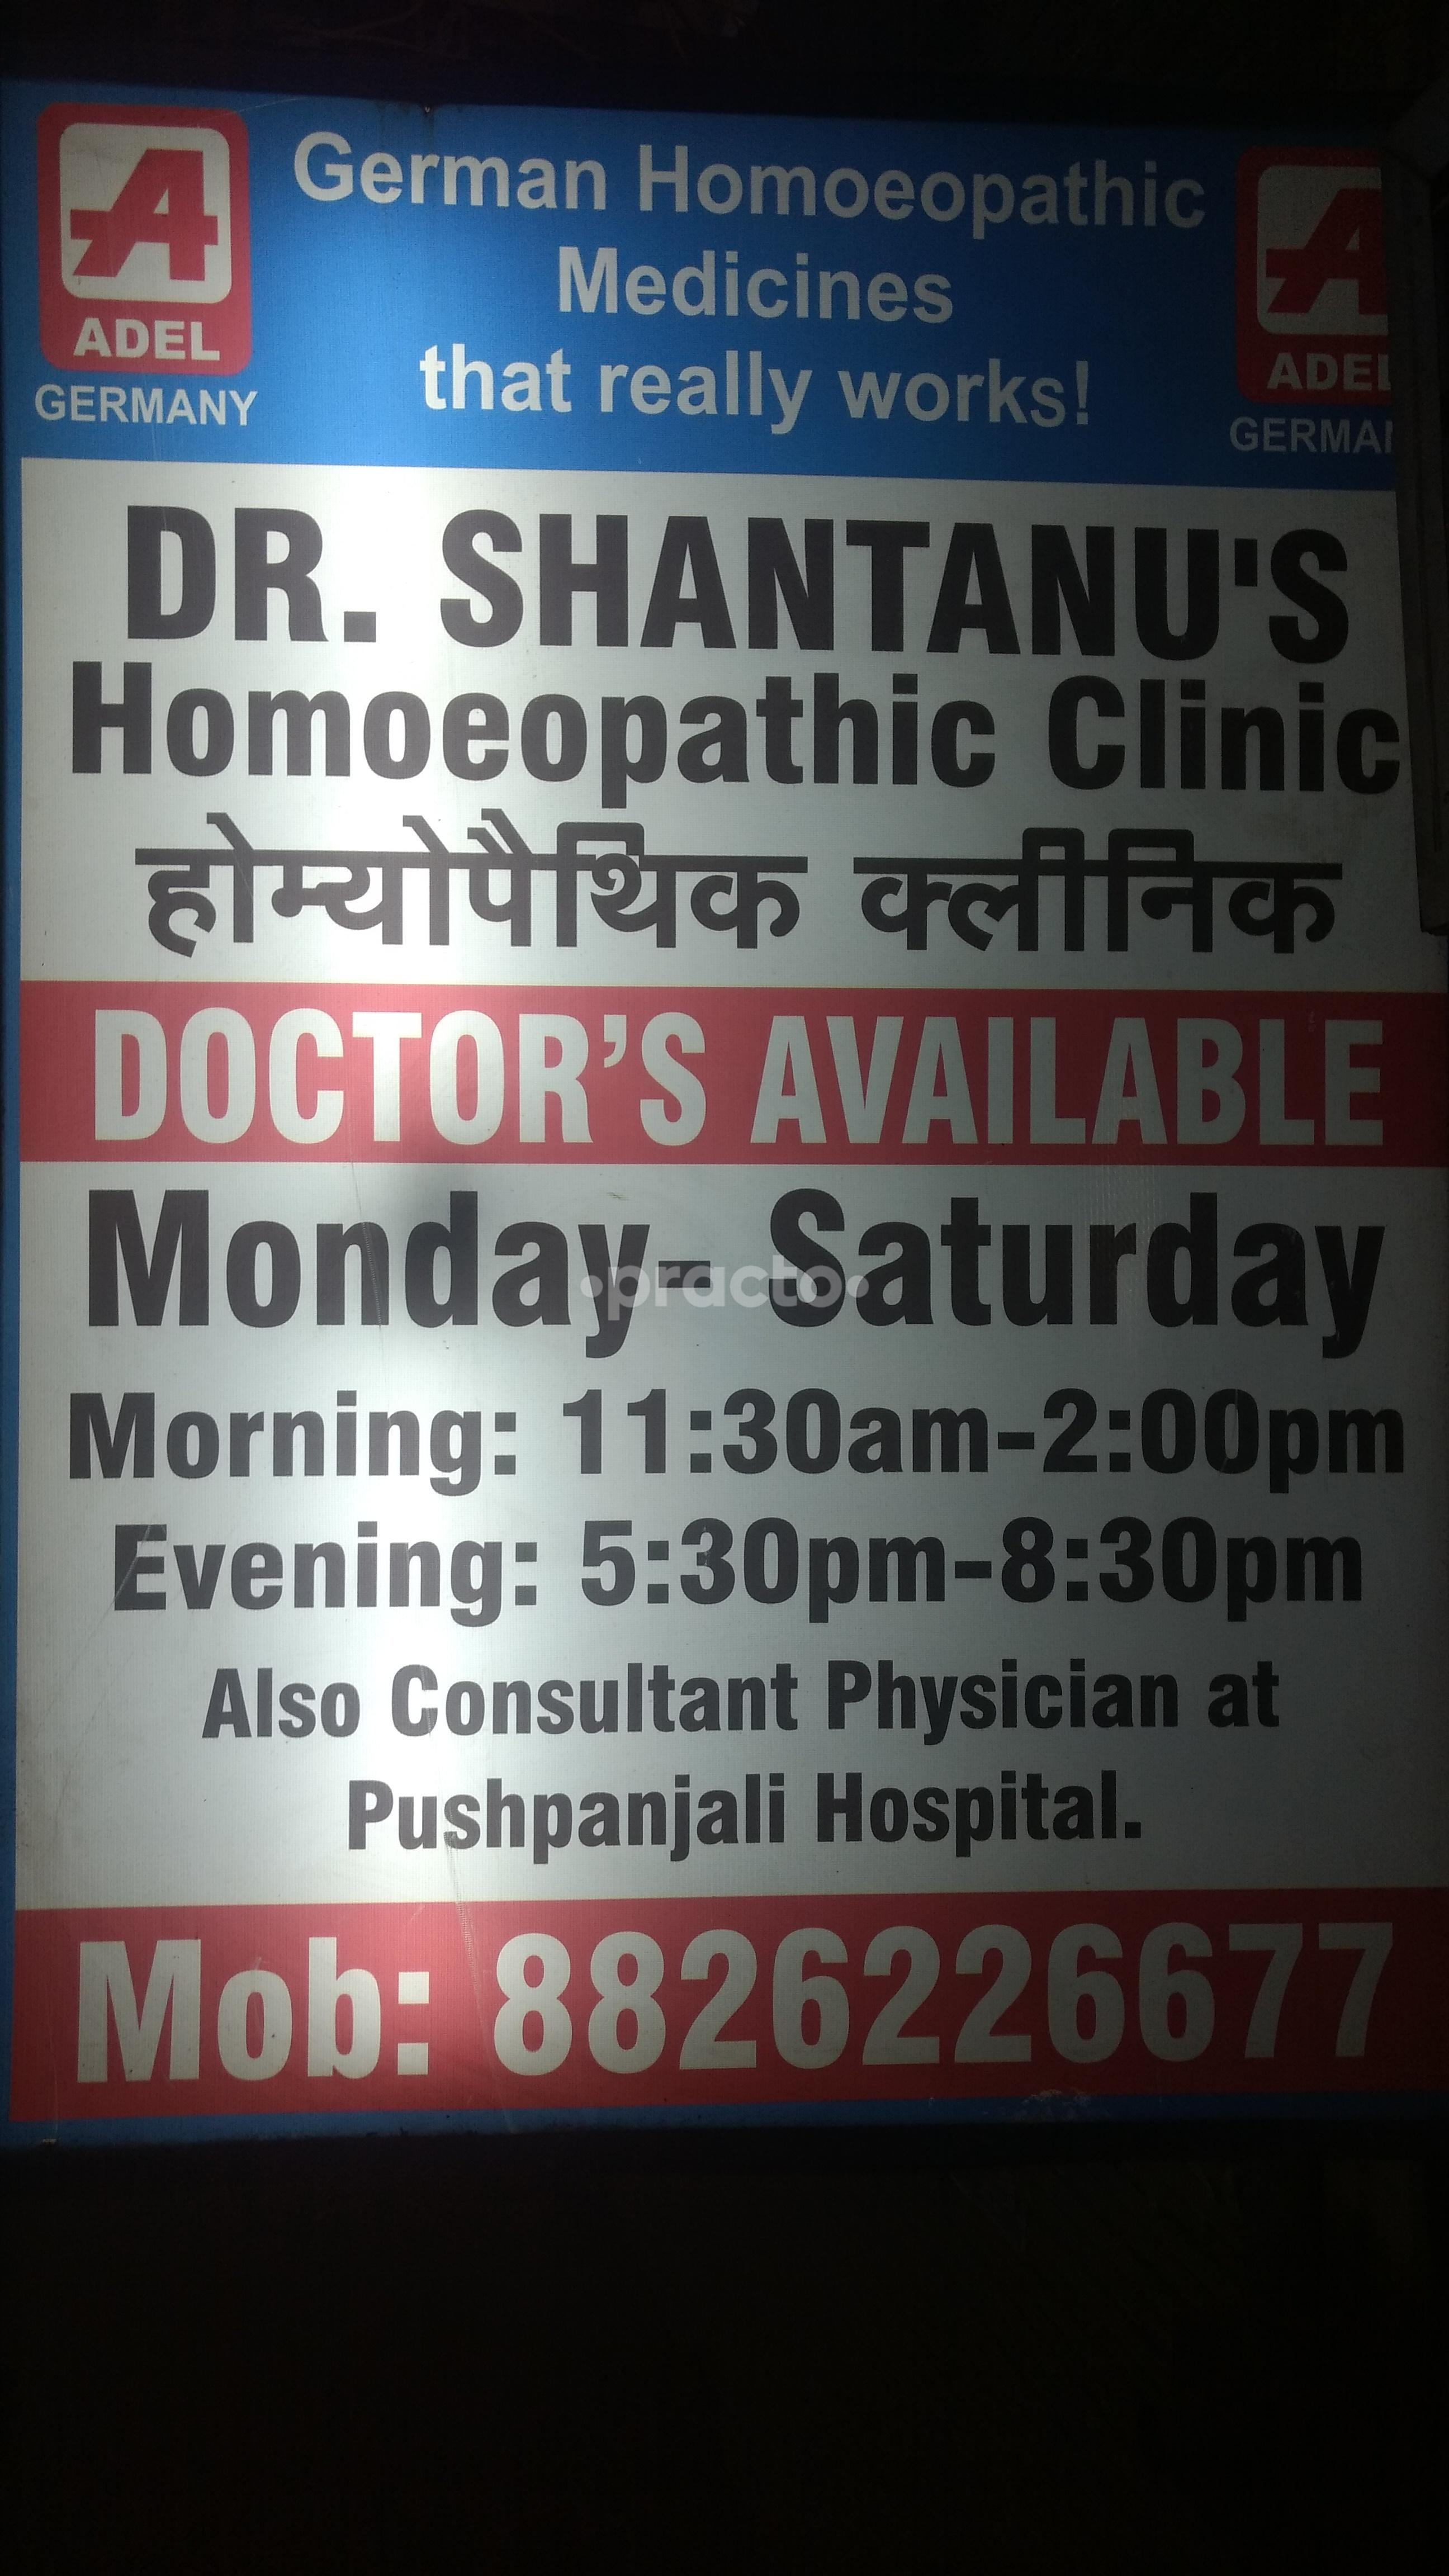 Dr. Shantanu's Homoeopathic Clinic